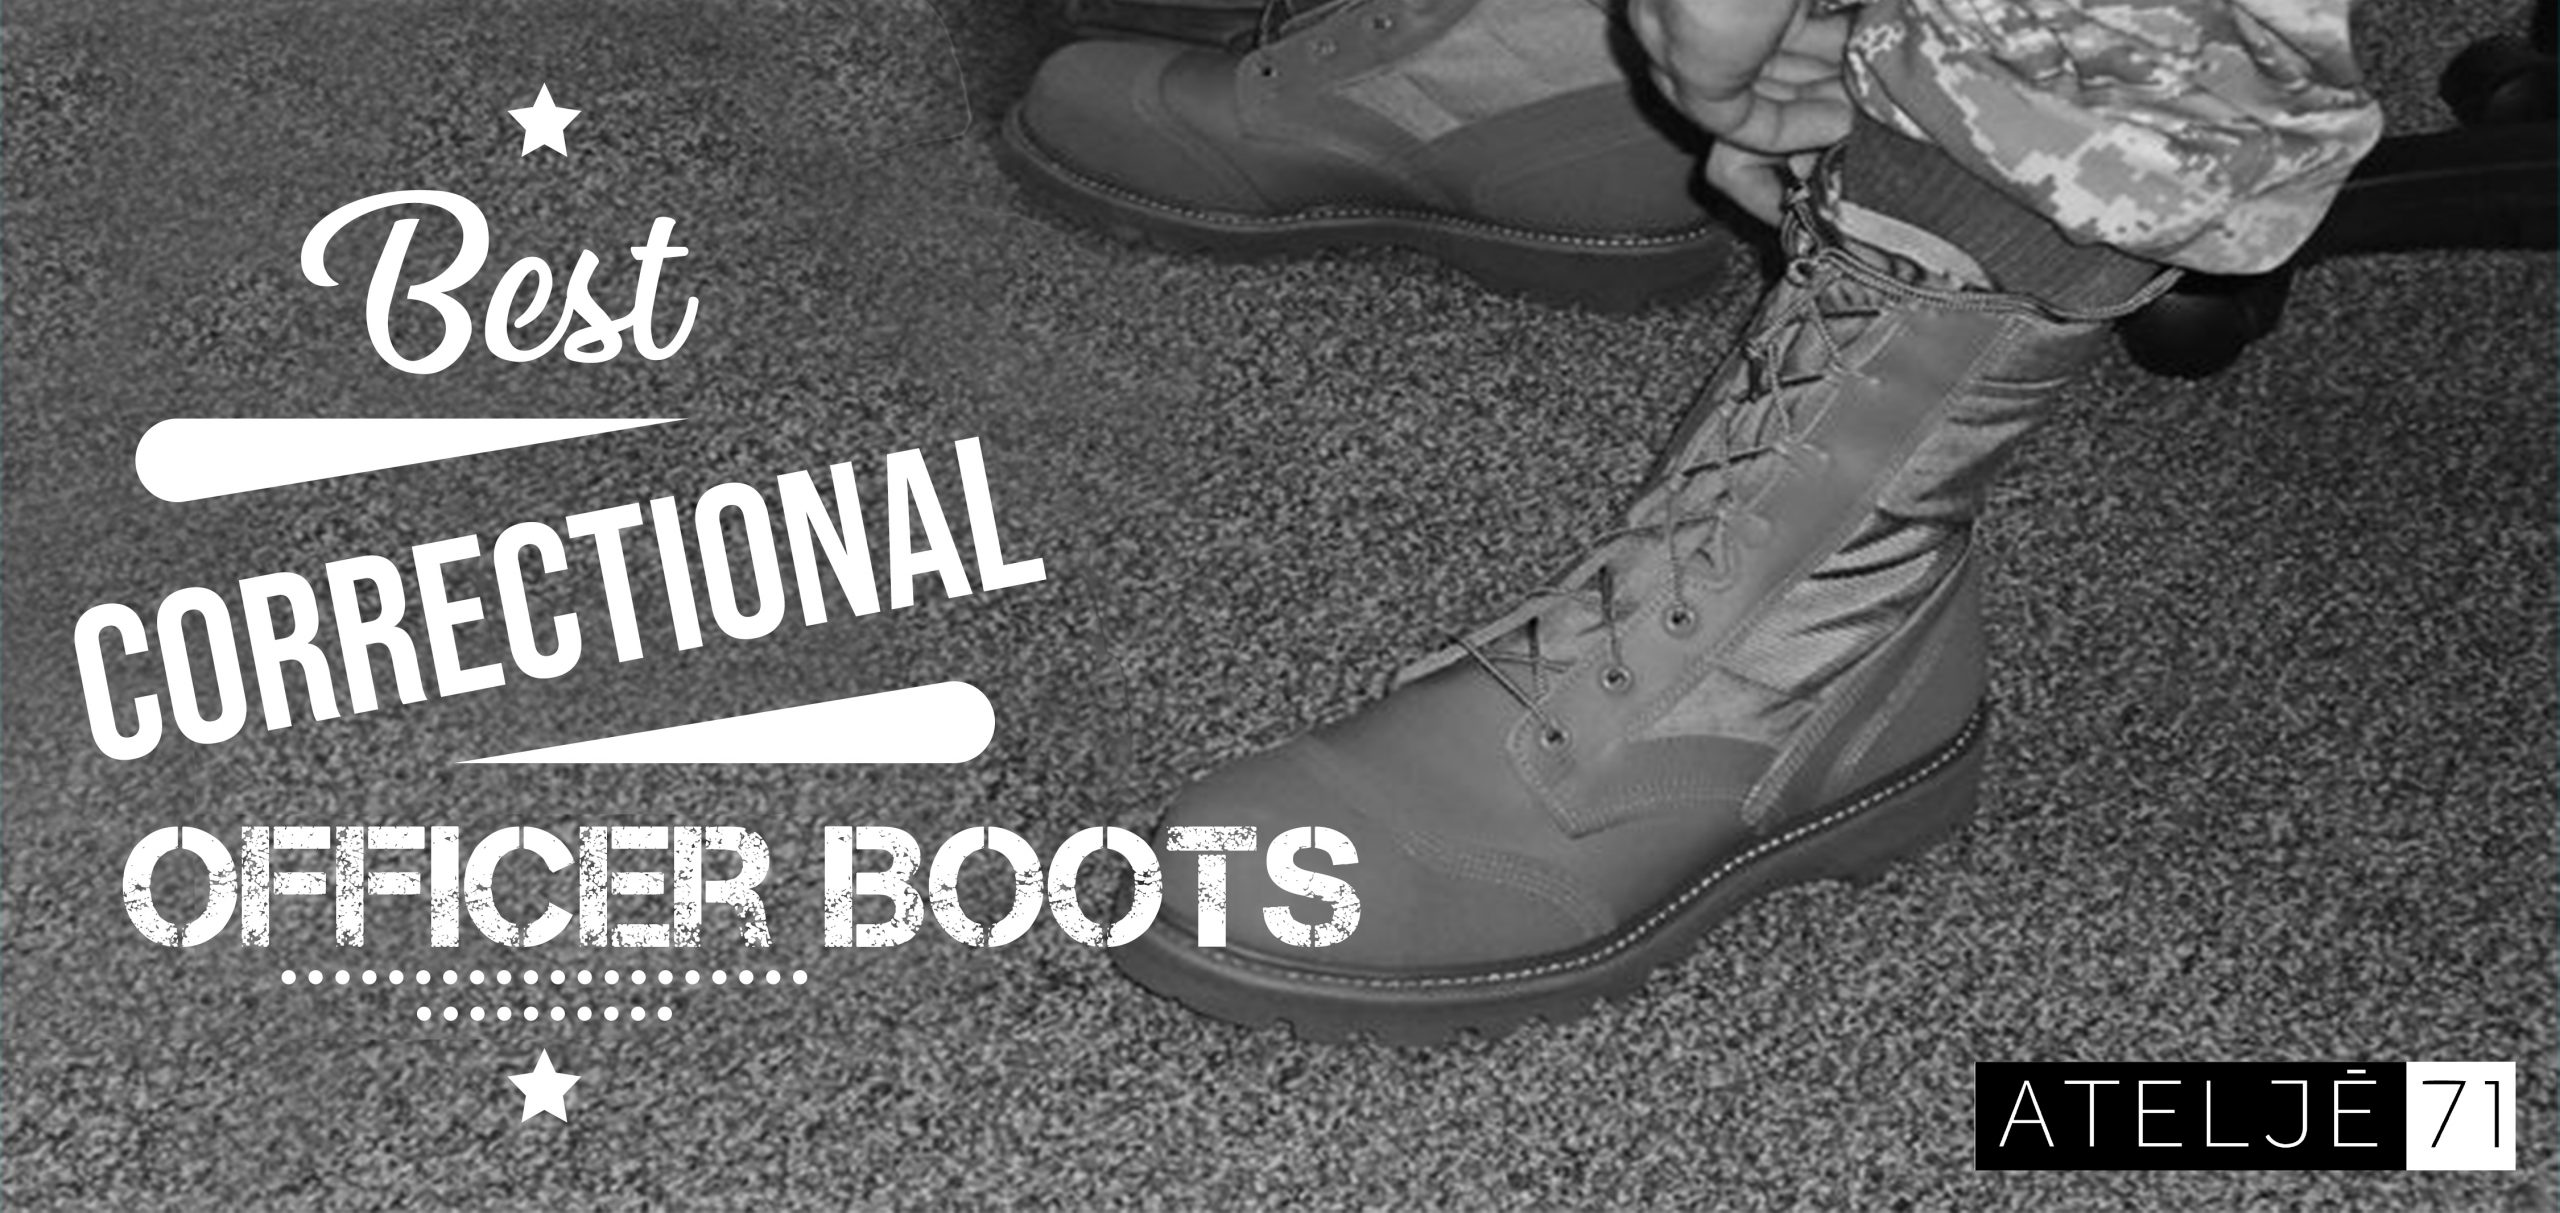 best correctional officer boots